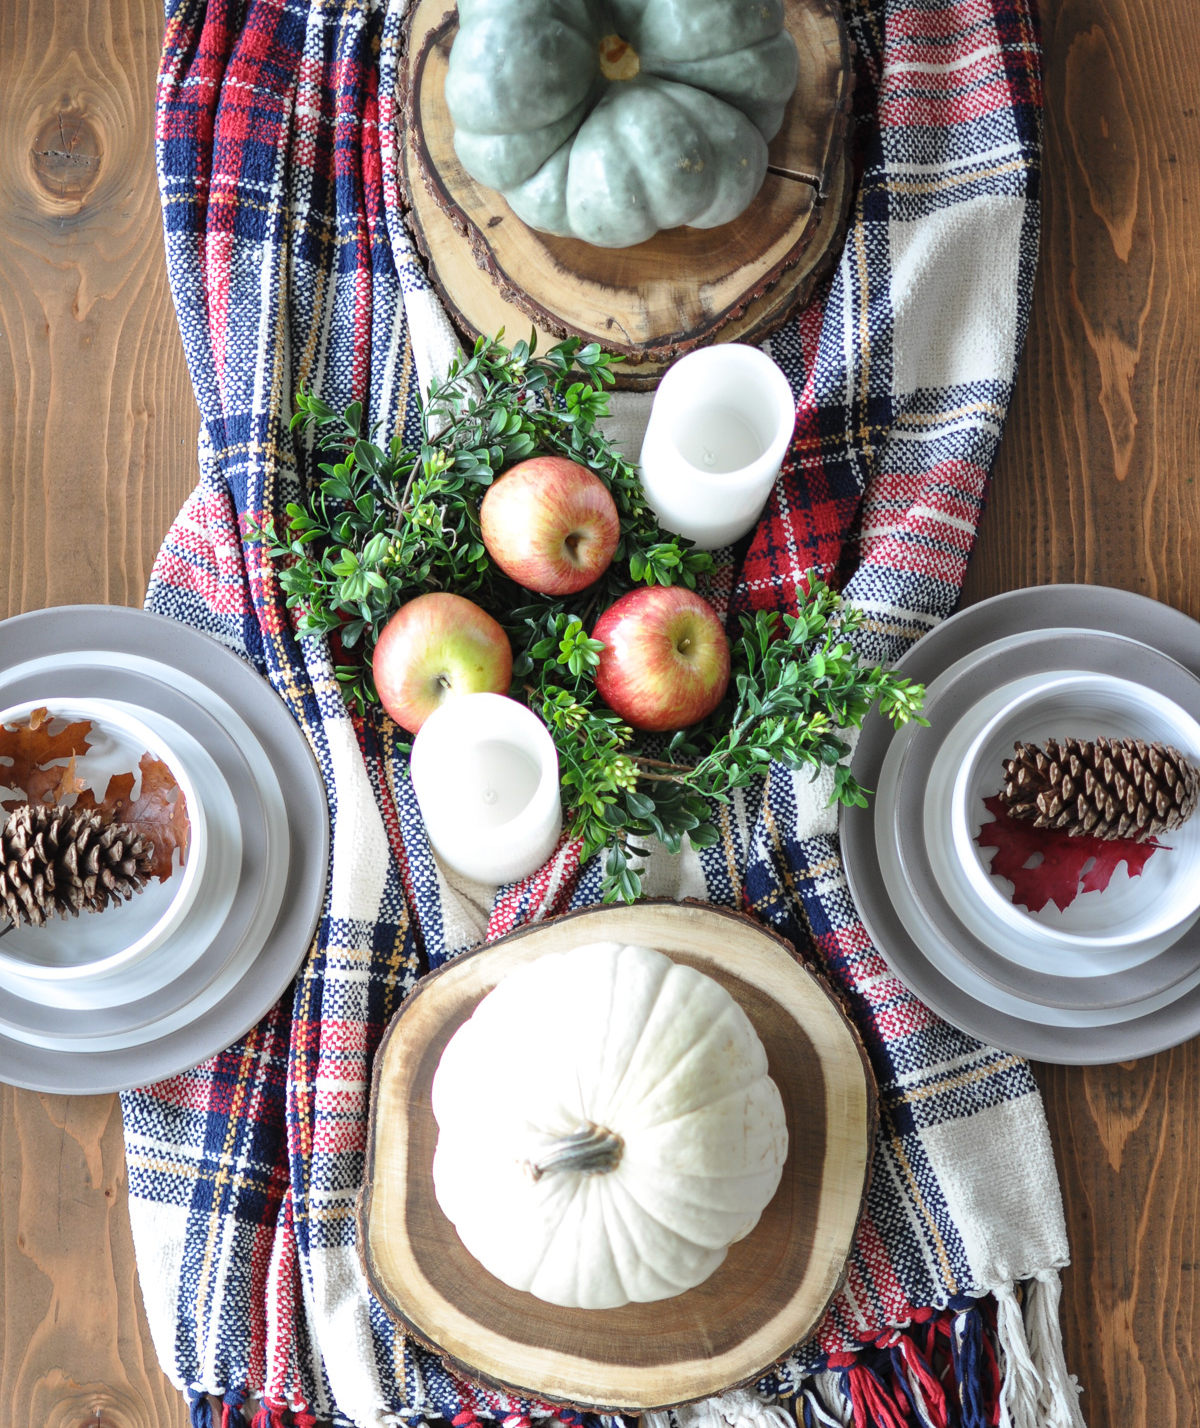 Plaid scarf as Thanksgiving table runner